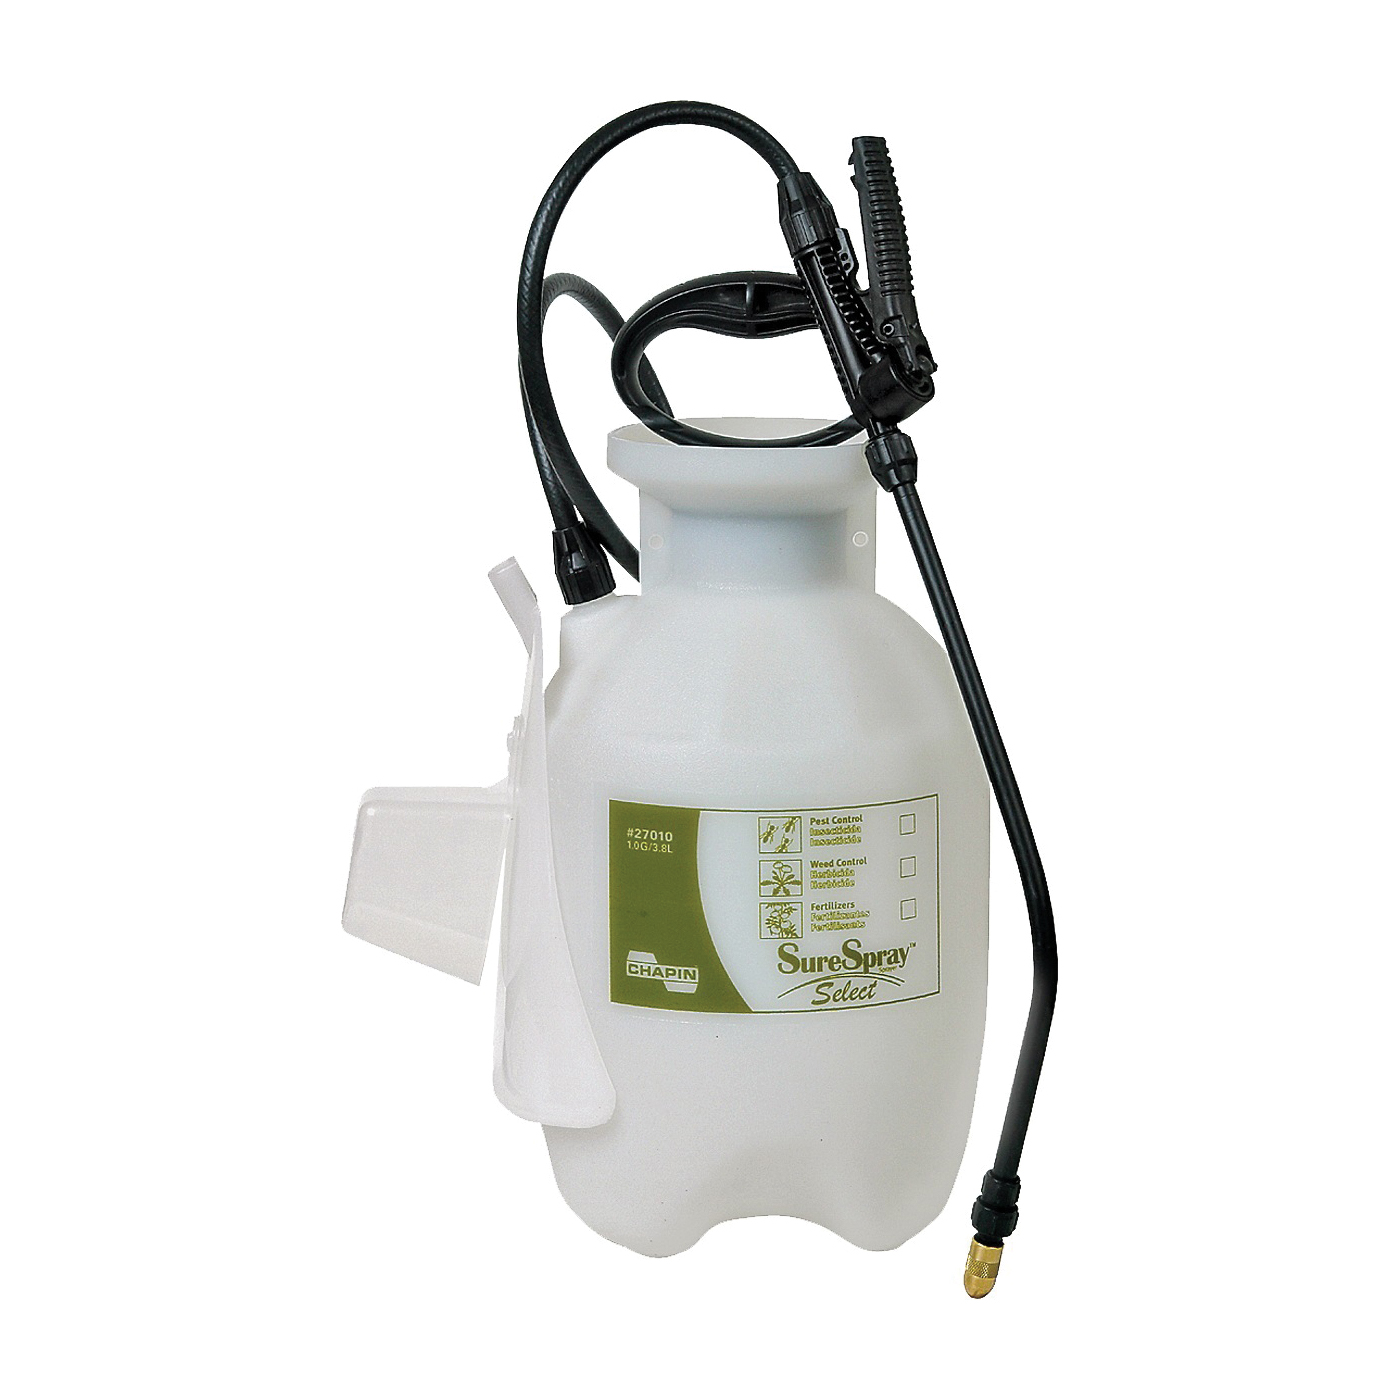 Picture of CHAPIN SureSpray 27010 Compression Sprayer, 1 gal Tank, Poly Tank, 34 in L Hose